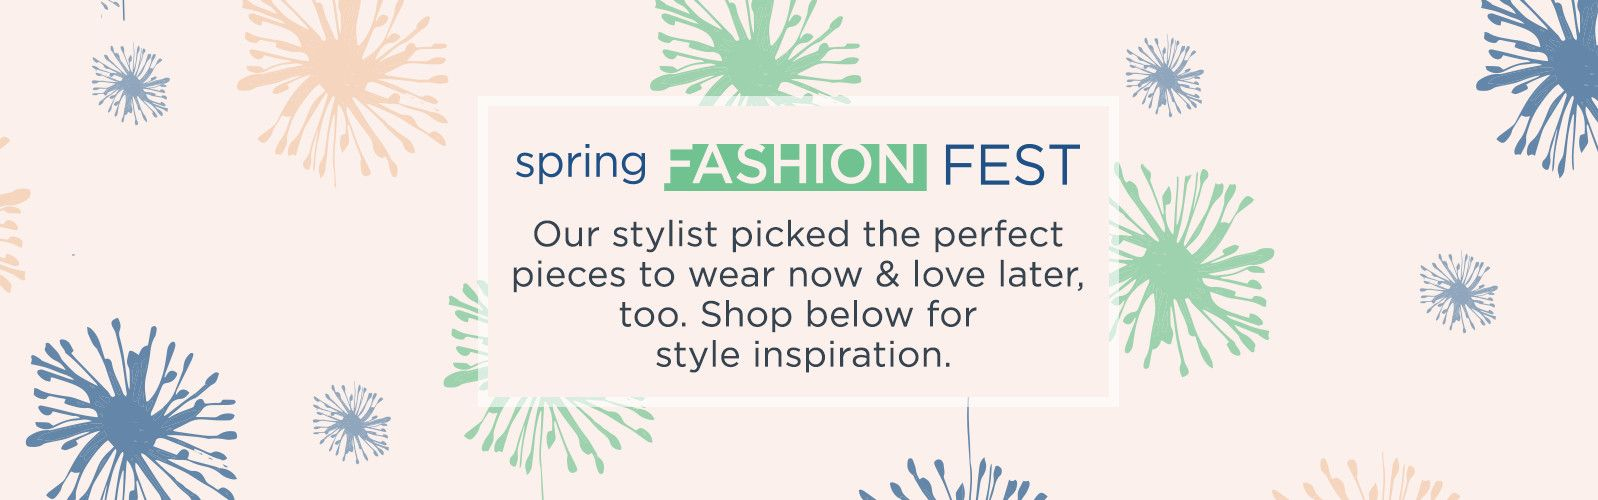 Spring Fashion Fest. Our stylist picked the perfect pieces to wear now & love later, too. Shop below for style inspiration.